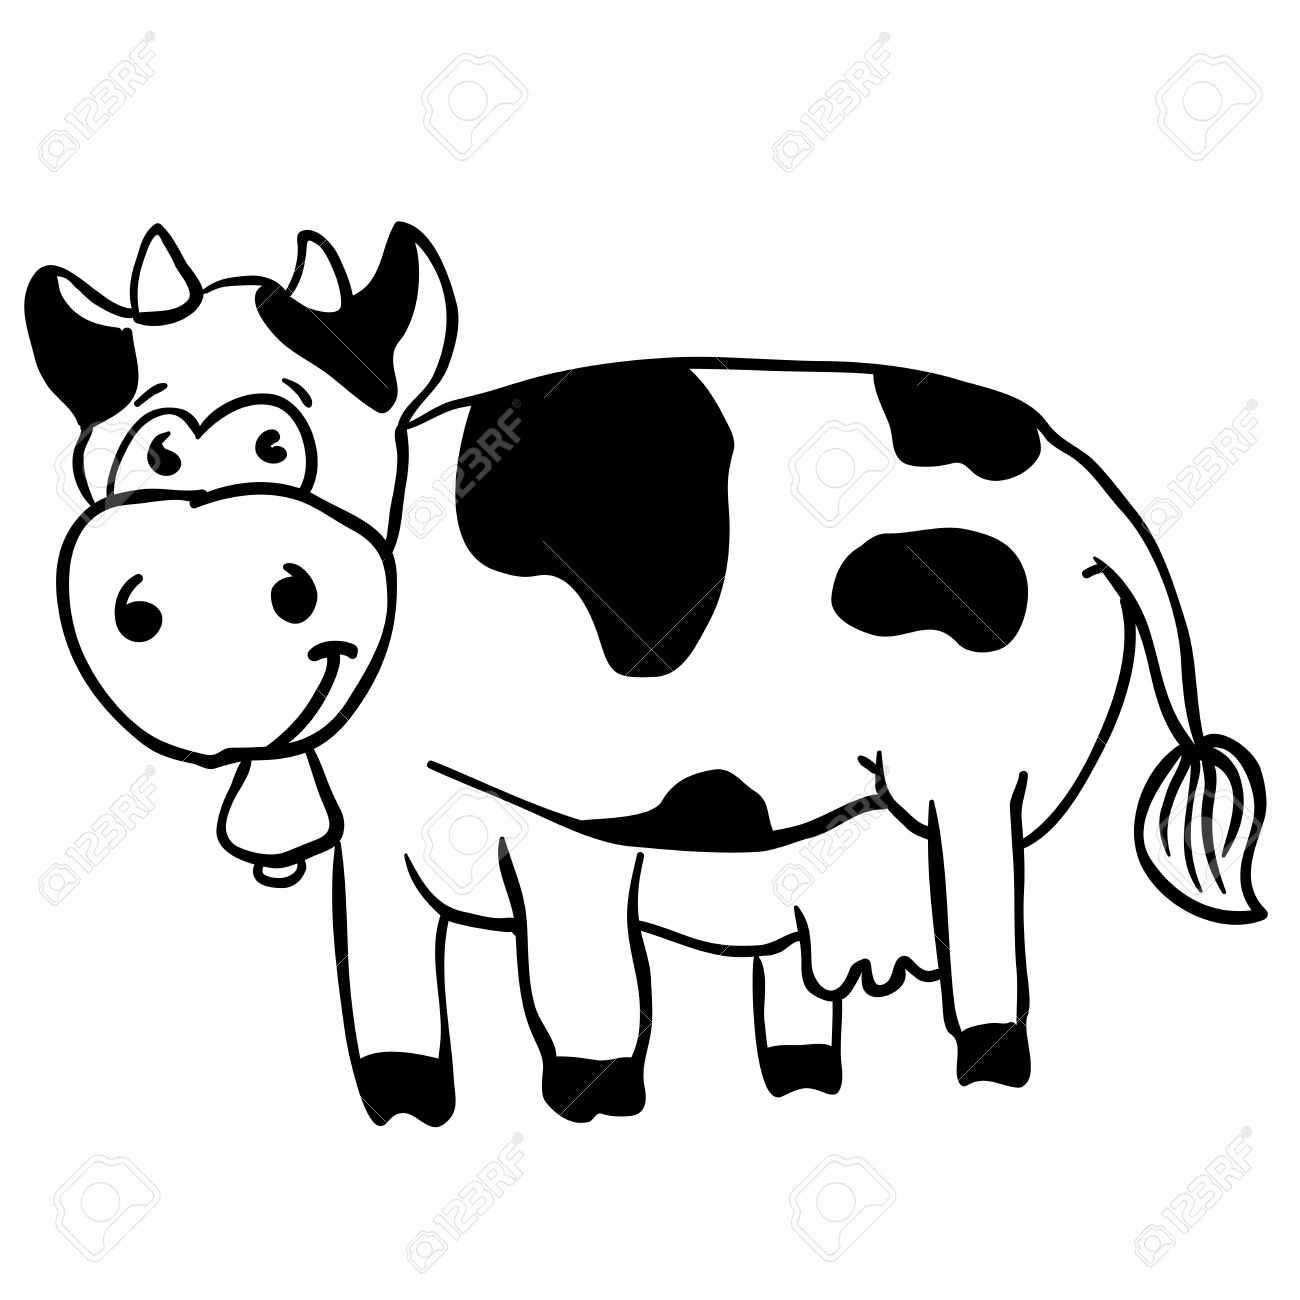 Simple black and white cow cartoon stock vector 55349611